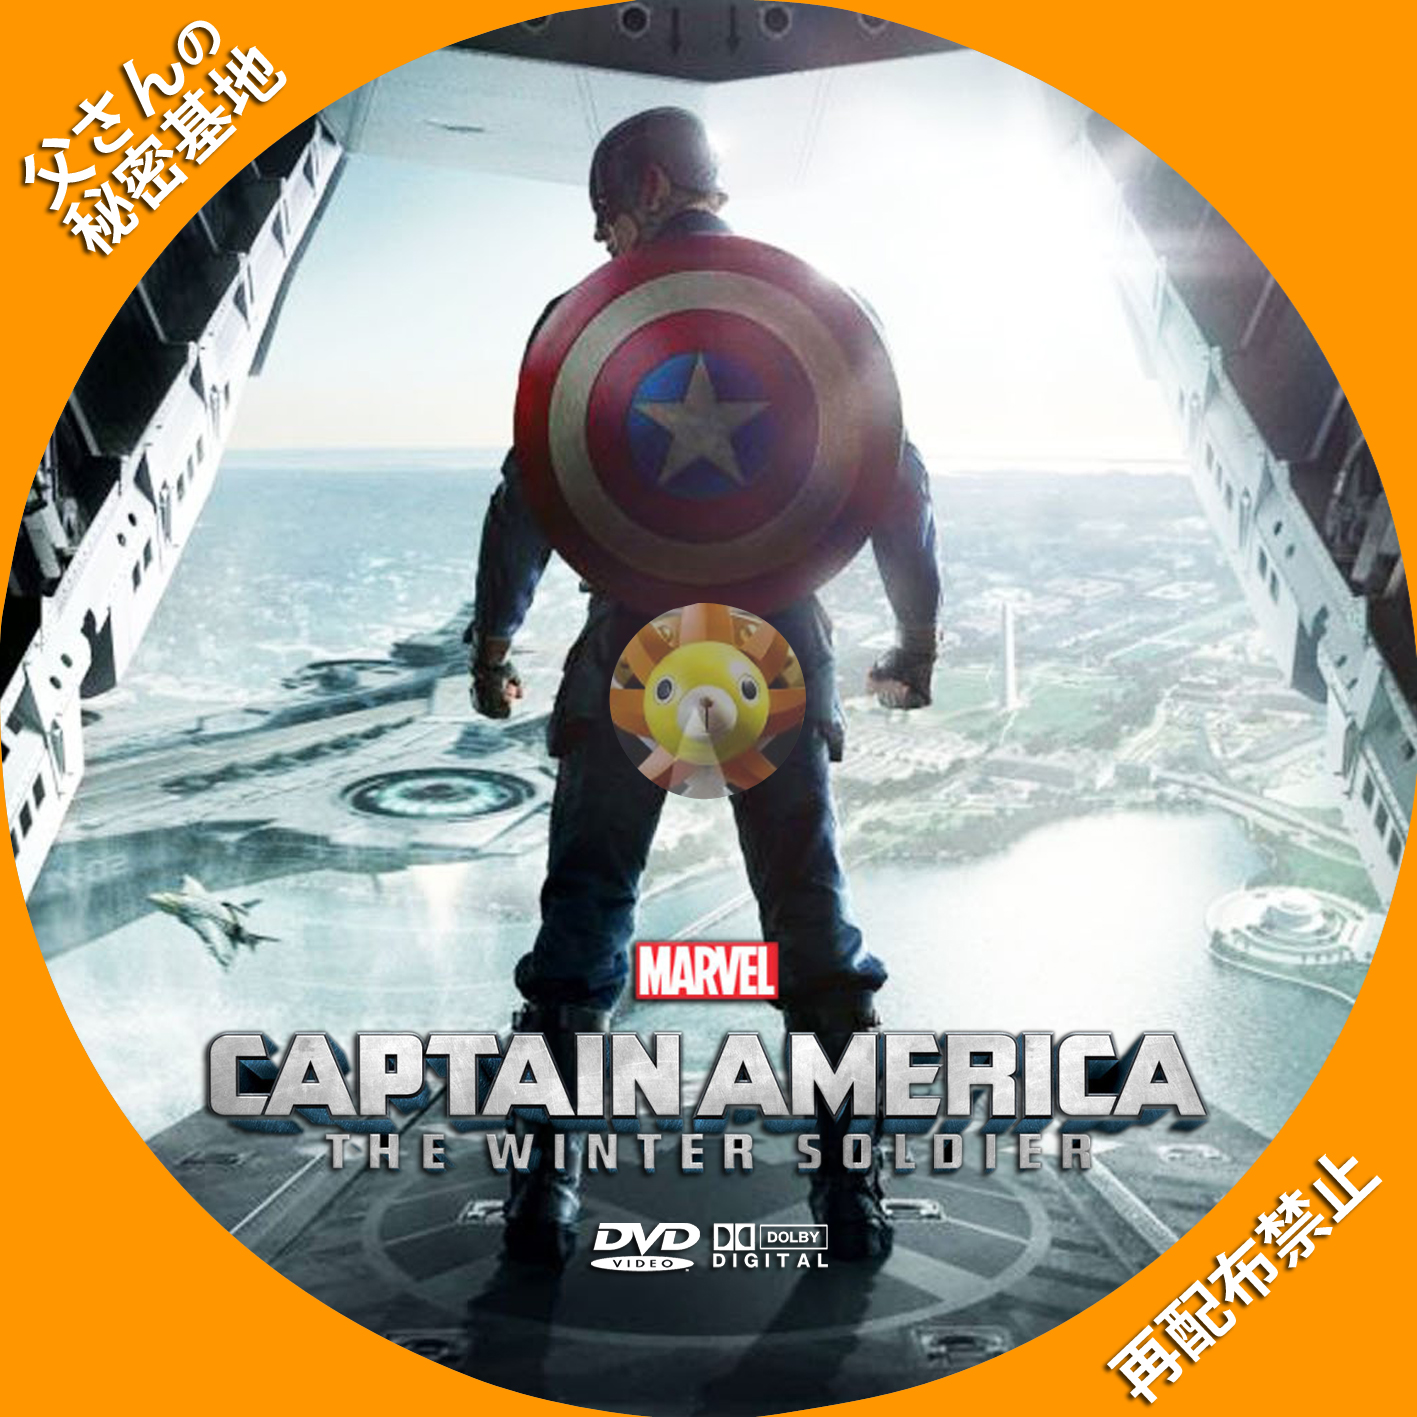 captain america the winter soldier_DVD_B